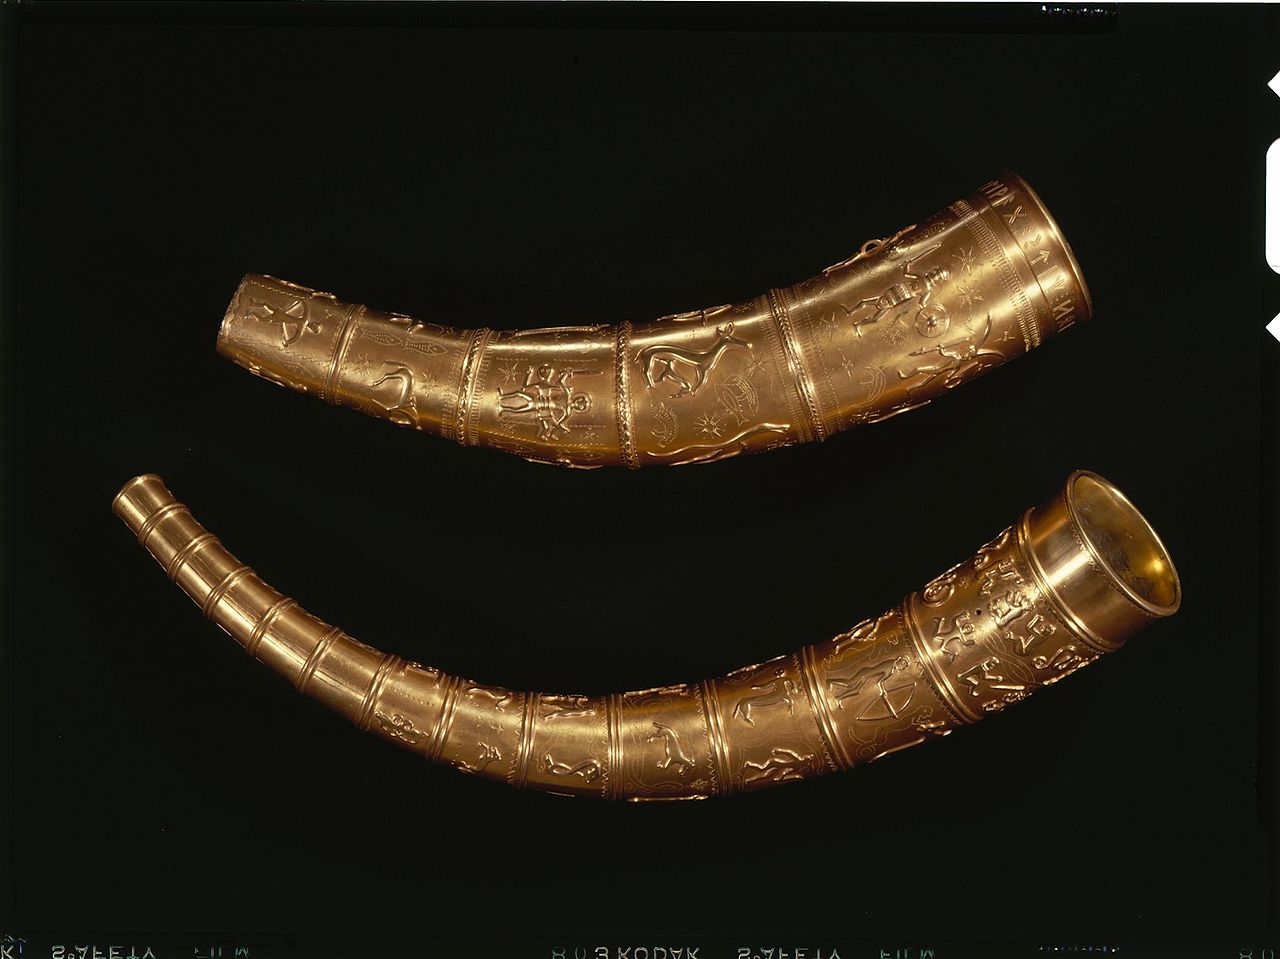 Replicas of the lost horns of Gallehus. The National Museum in Copenhagen.